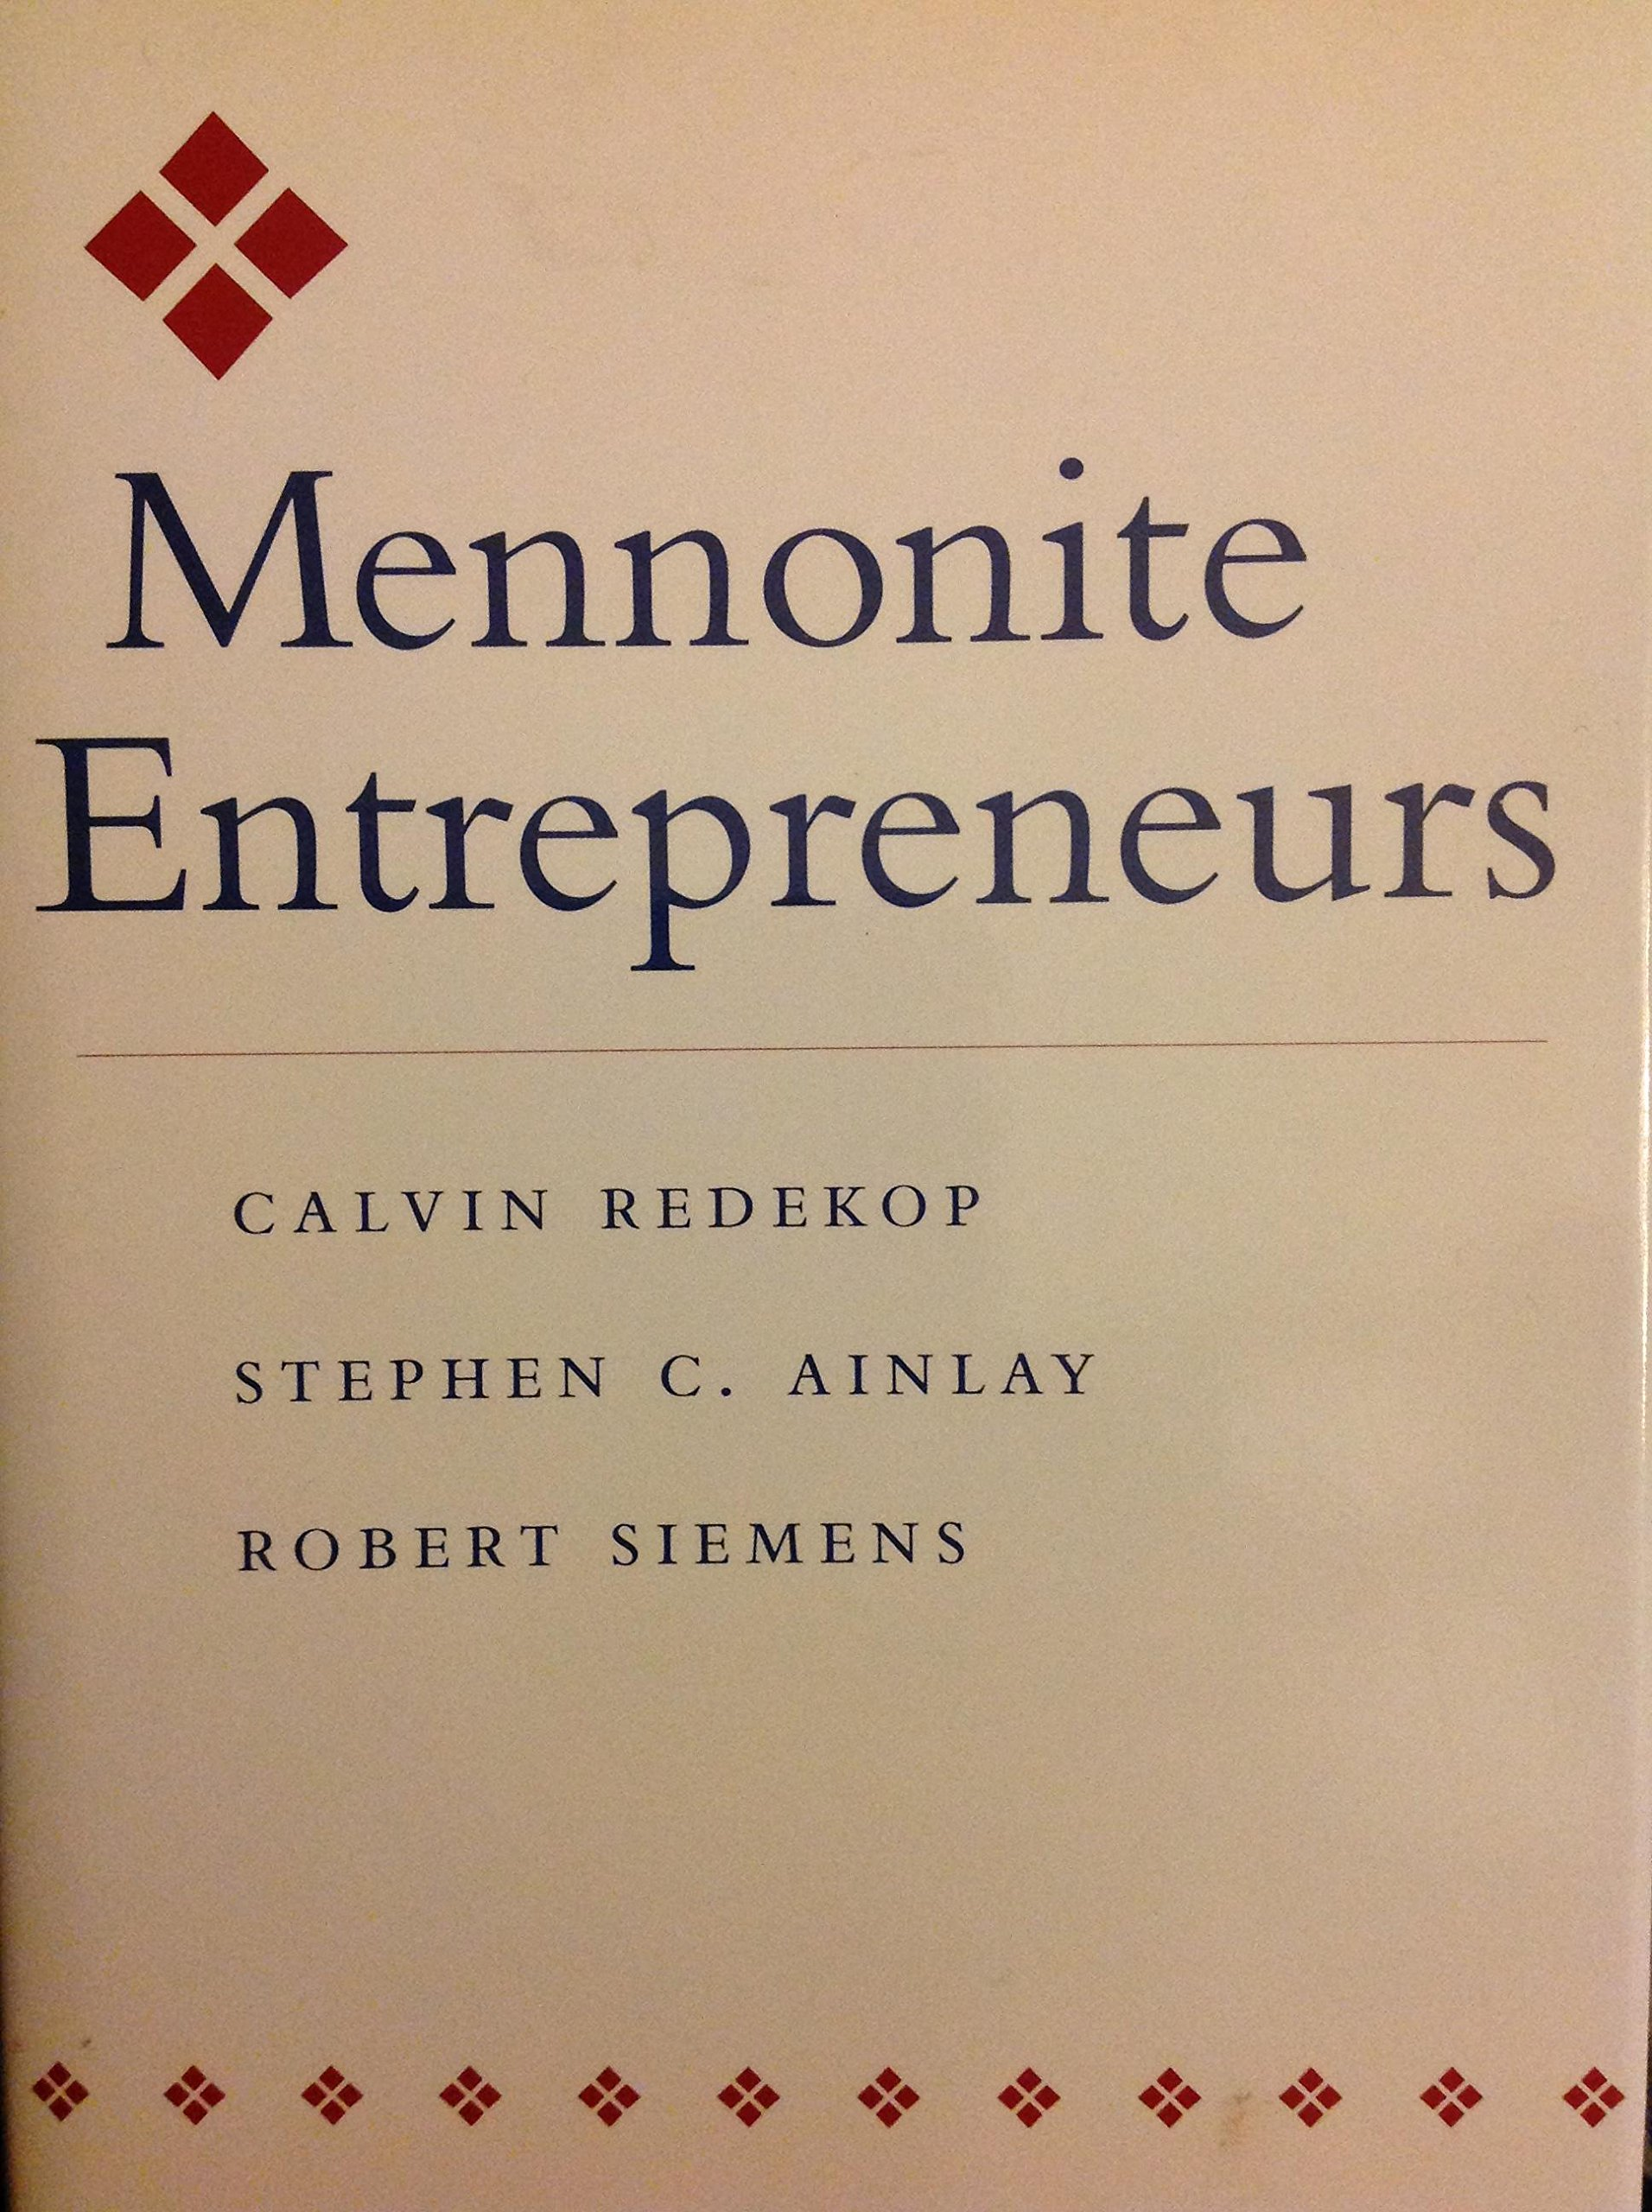 Mennonite Entrepreneurs (Center Books in Anabaptist Studies)